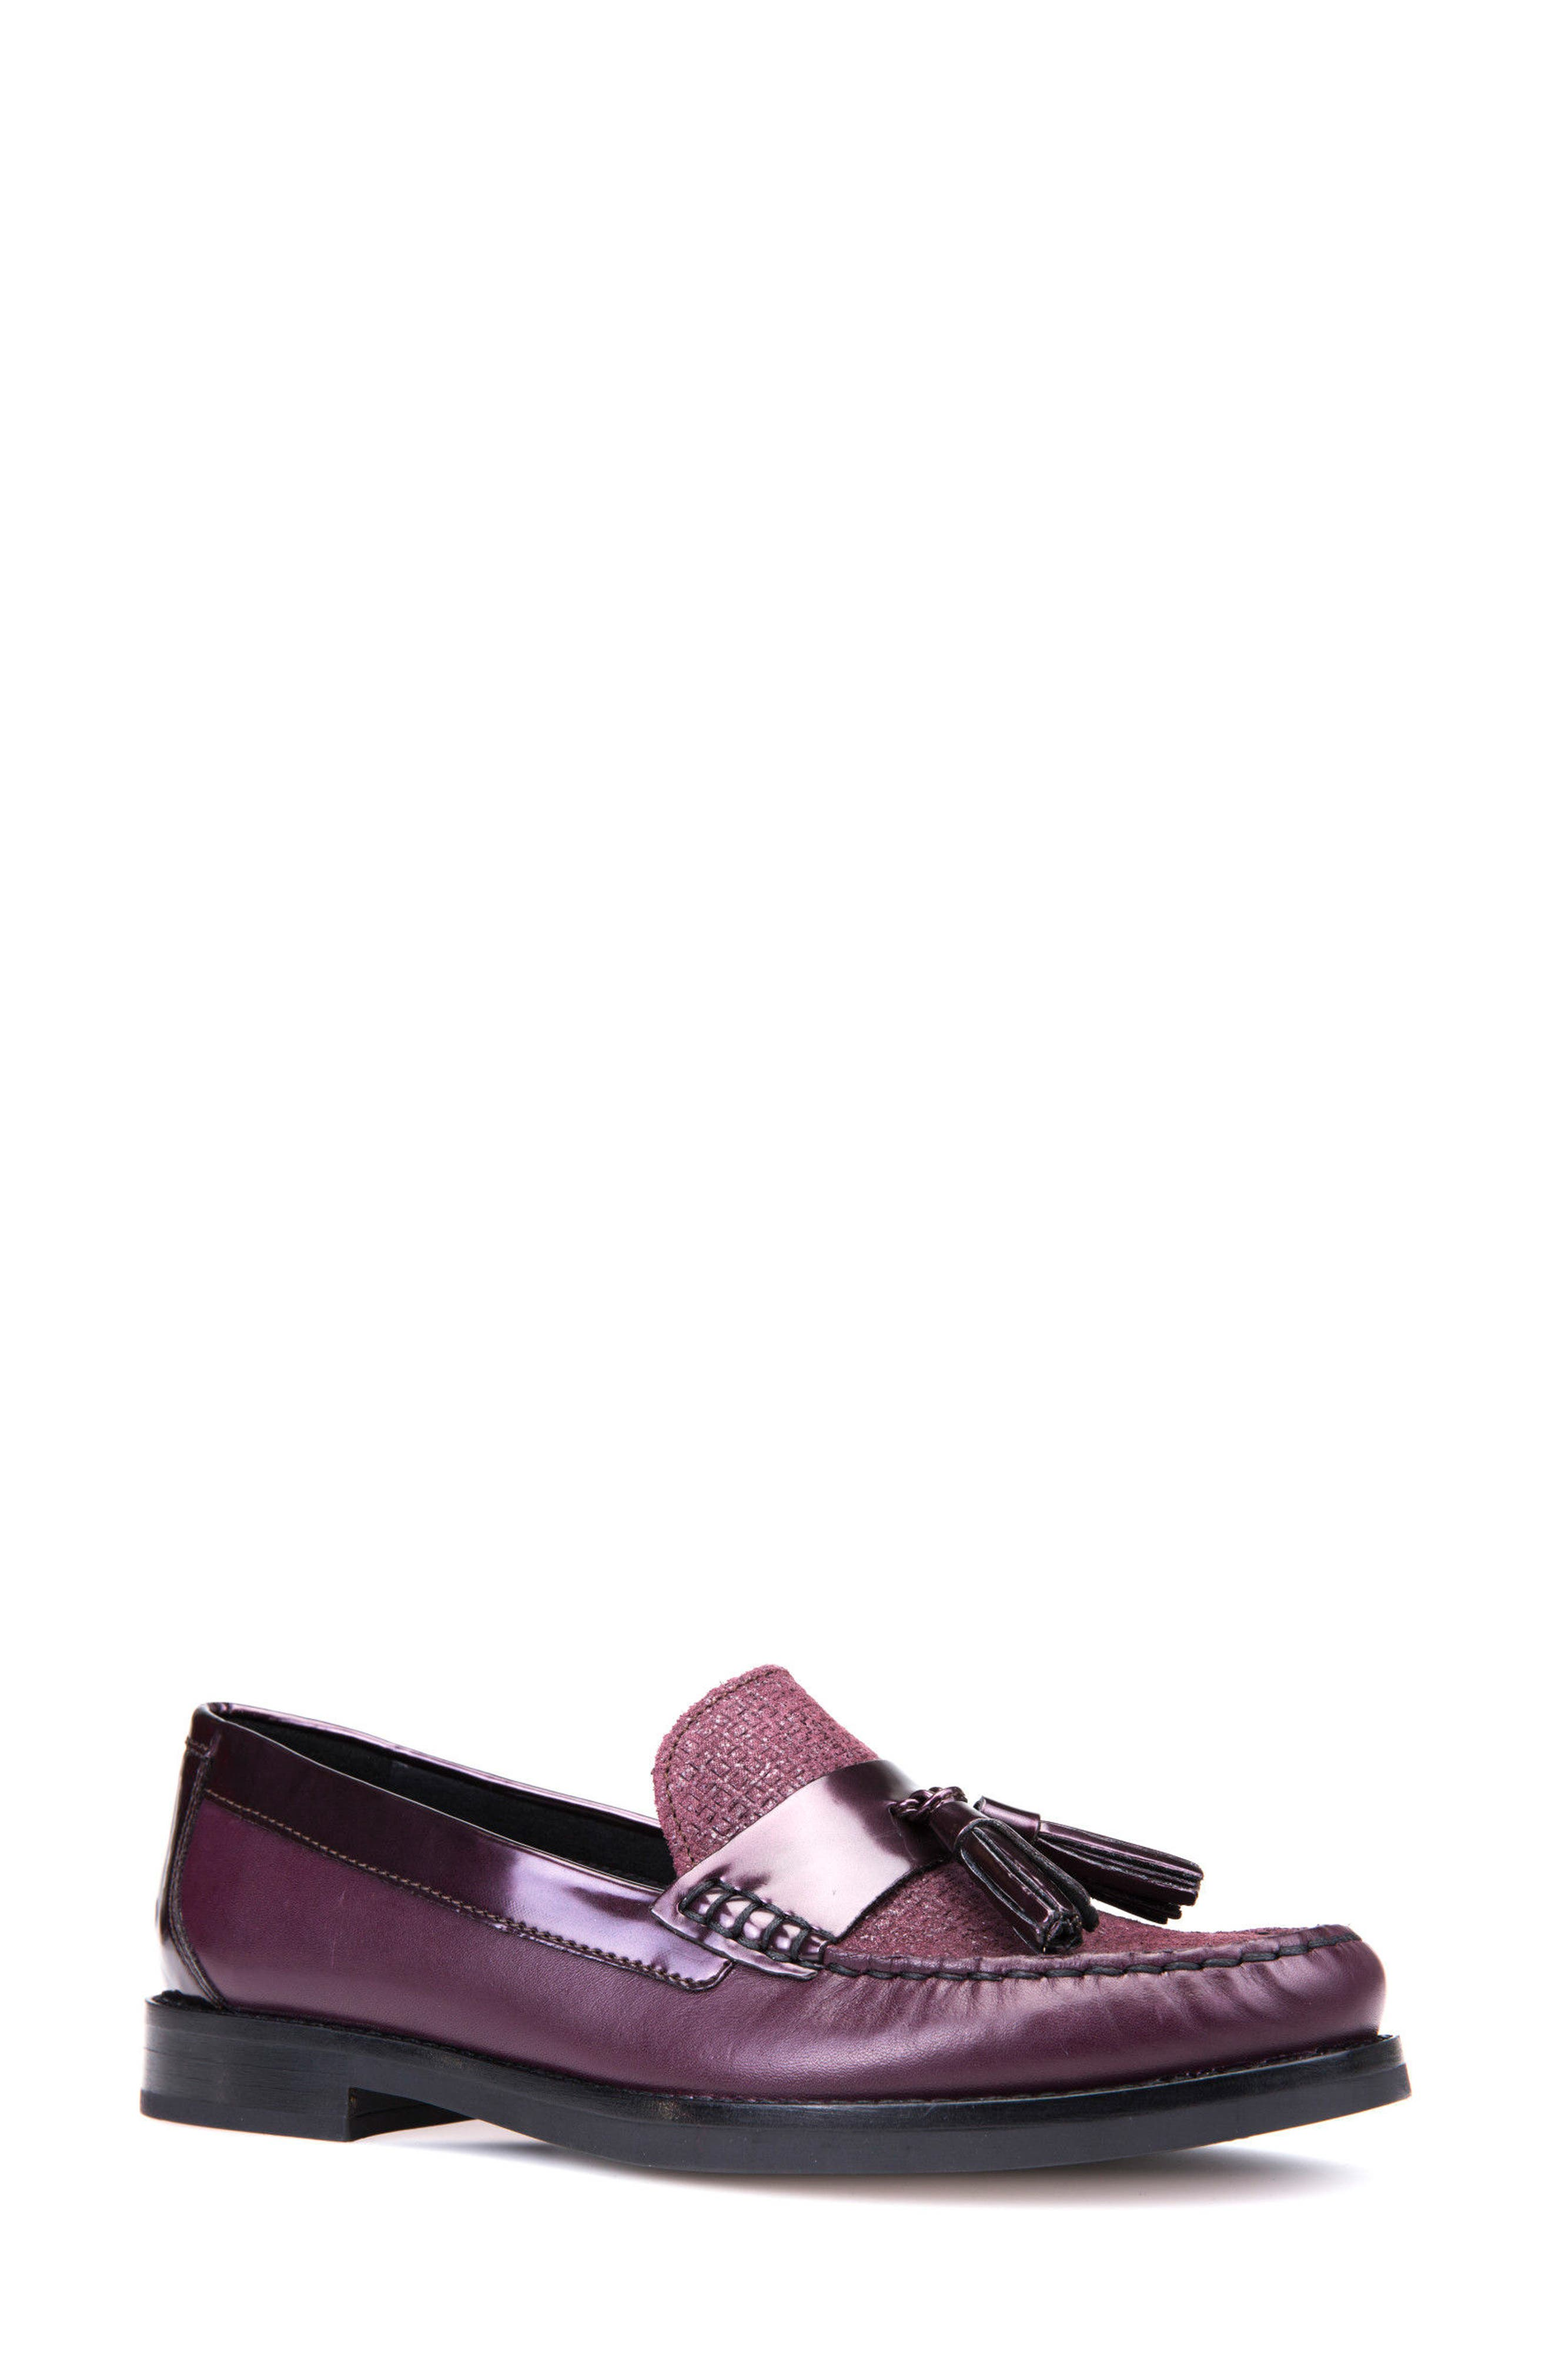 Alternate Image 1 Selected - Geox Promethea Loafer (Women)